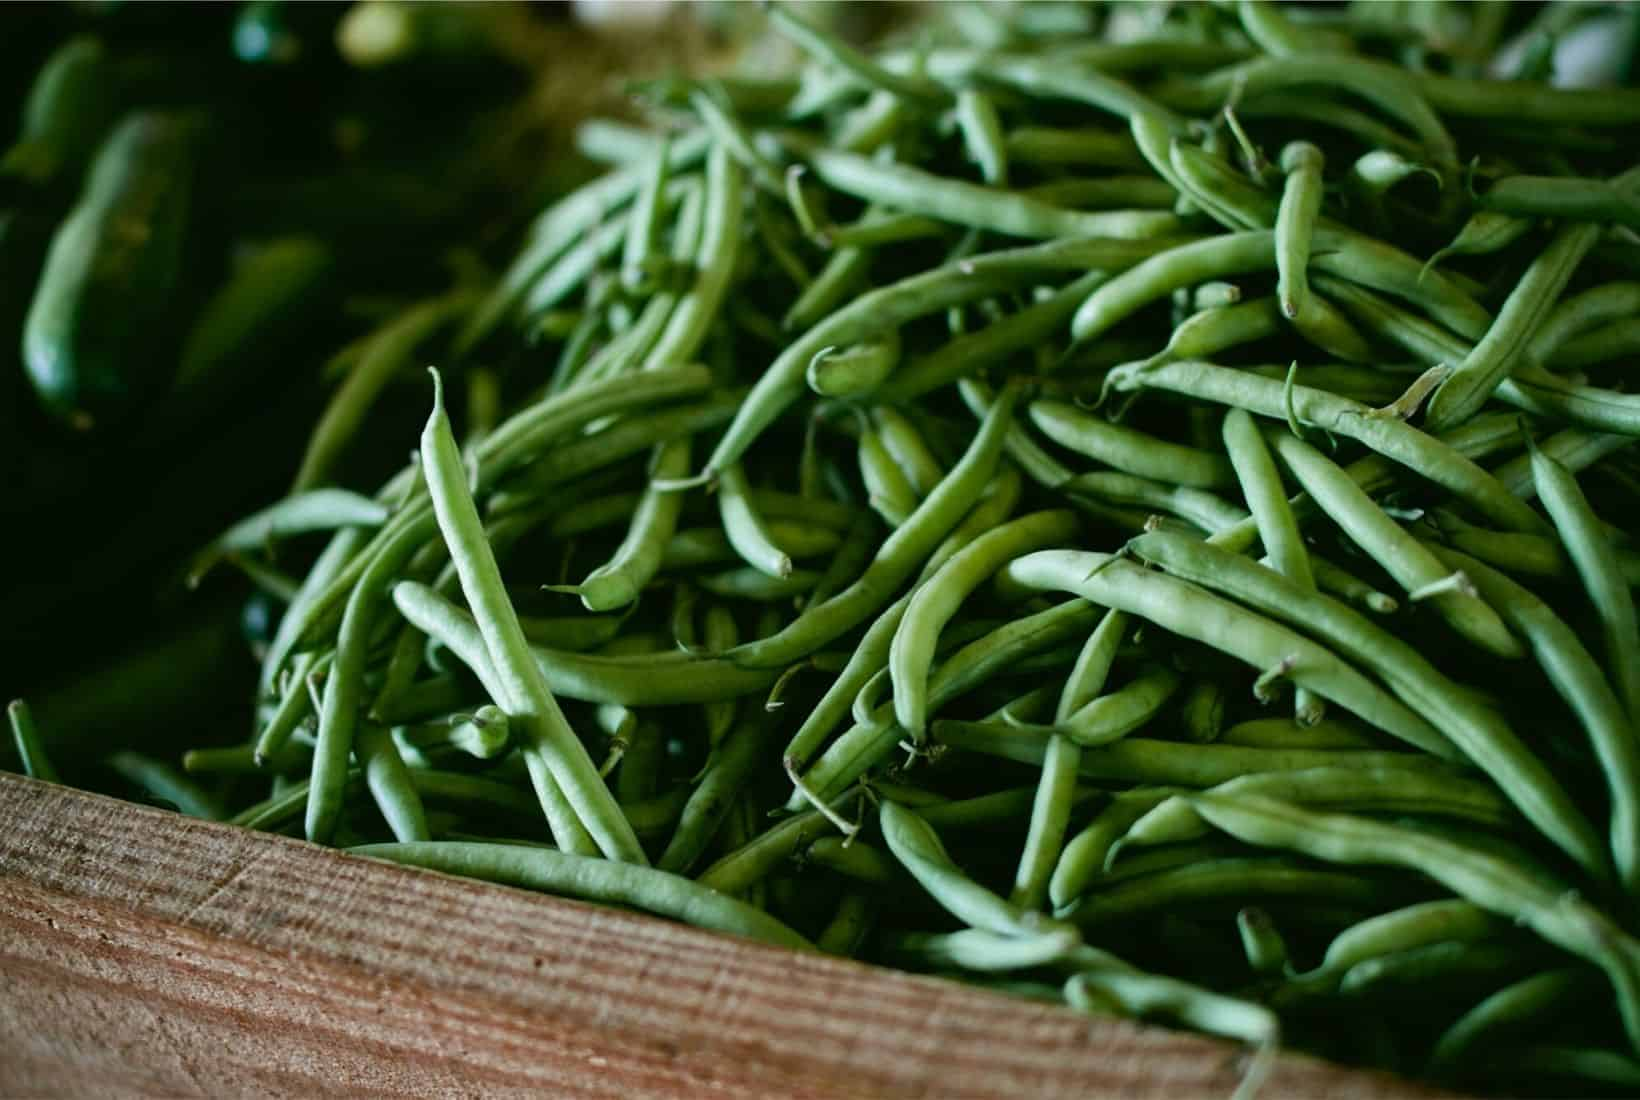 GREEN BEANS IN A WOODEN BOX